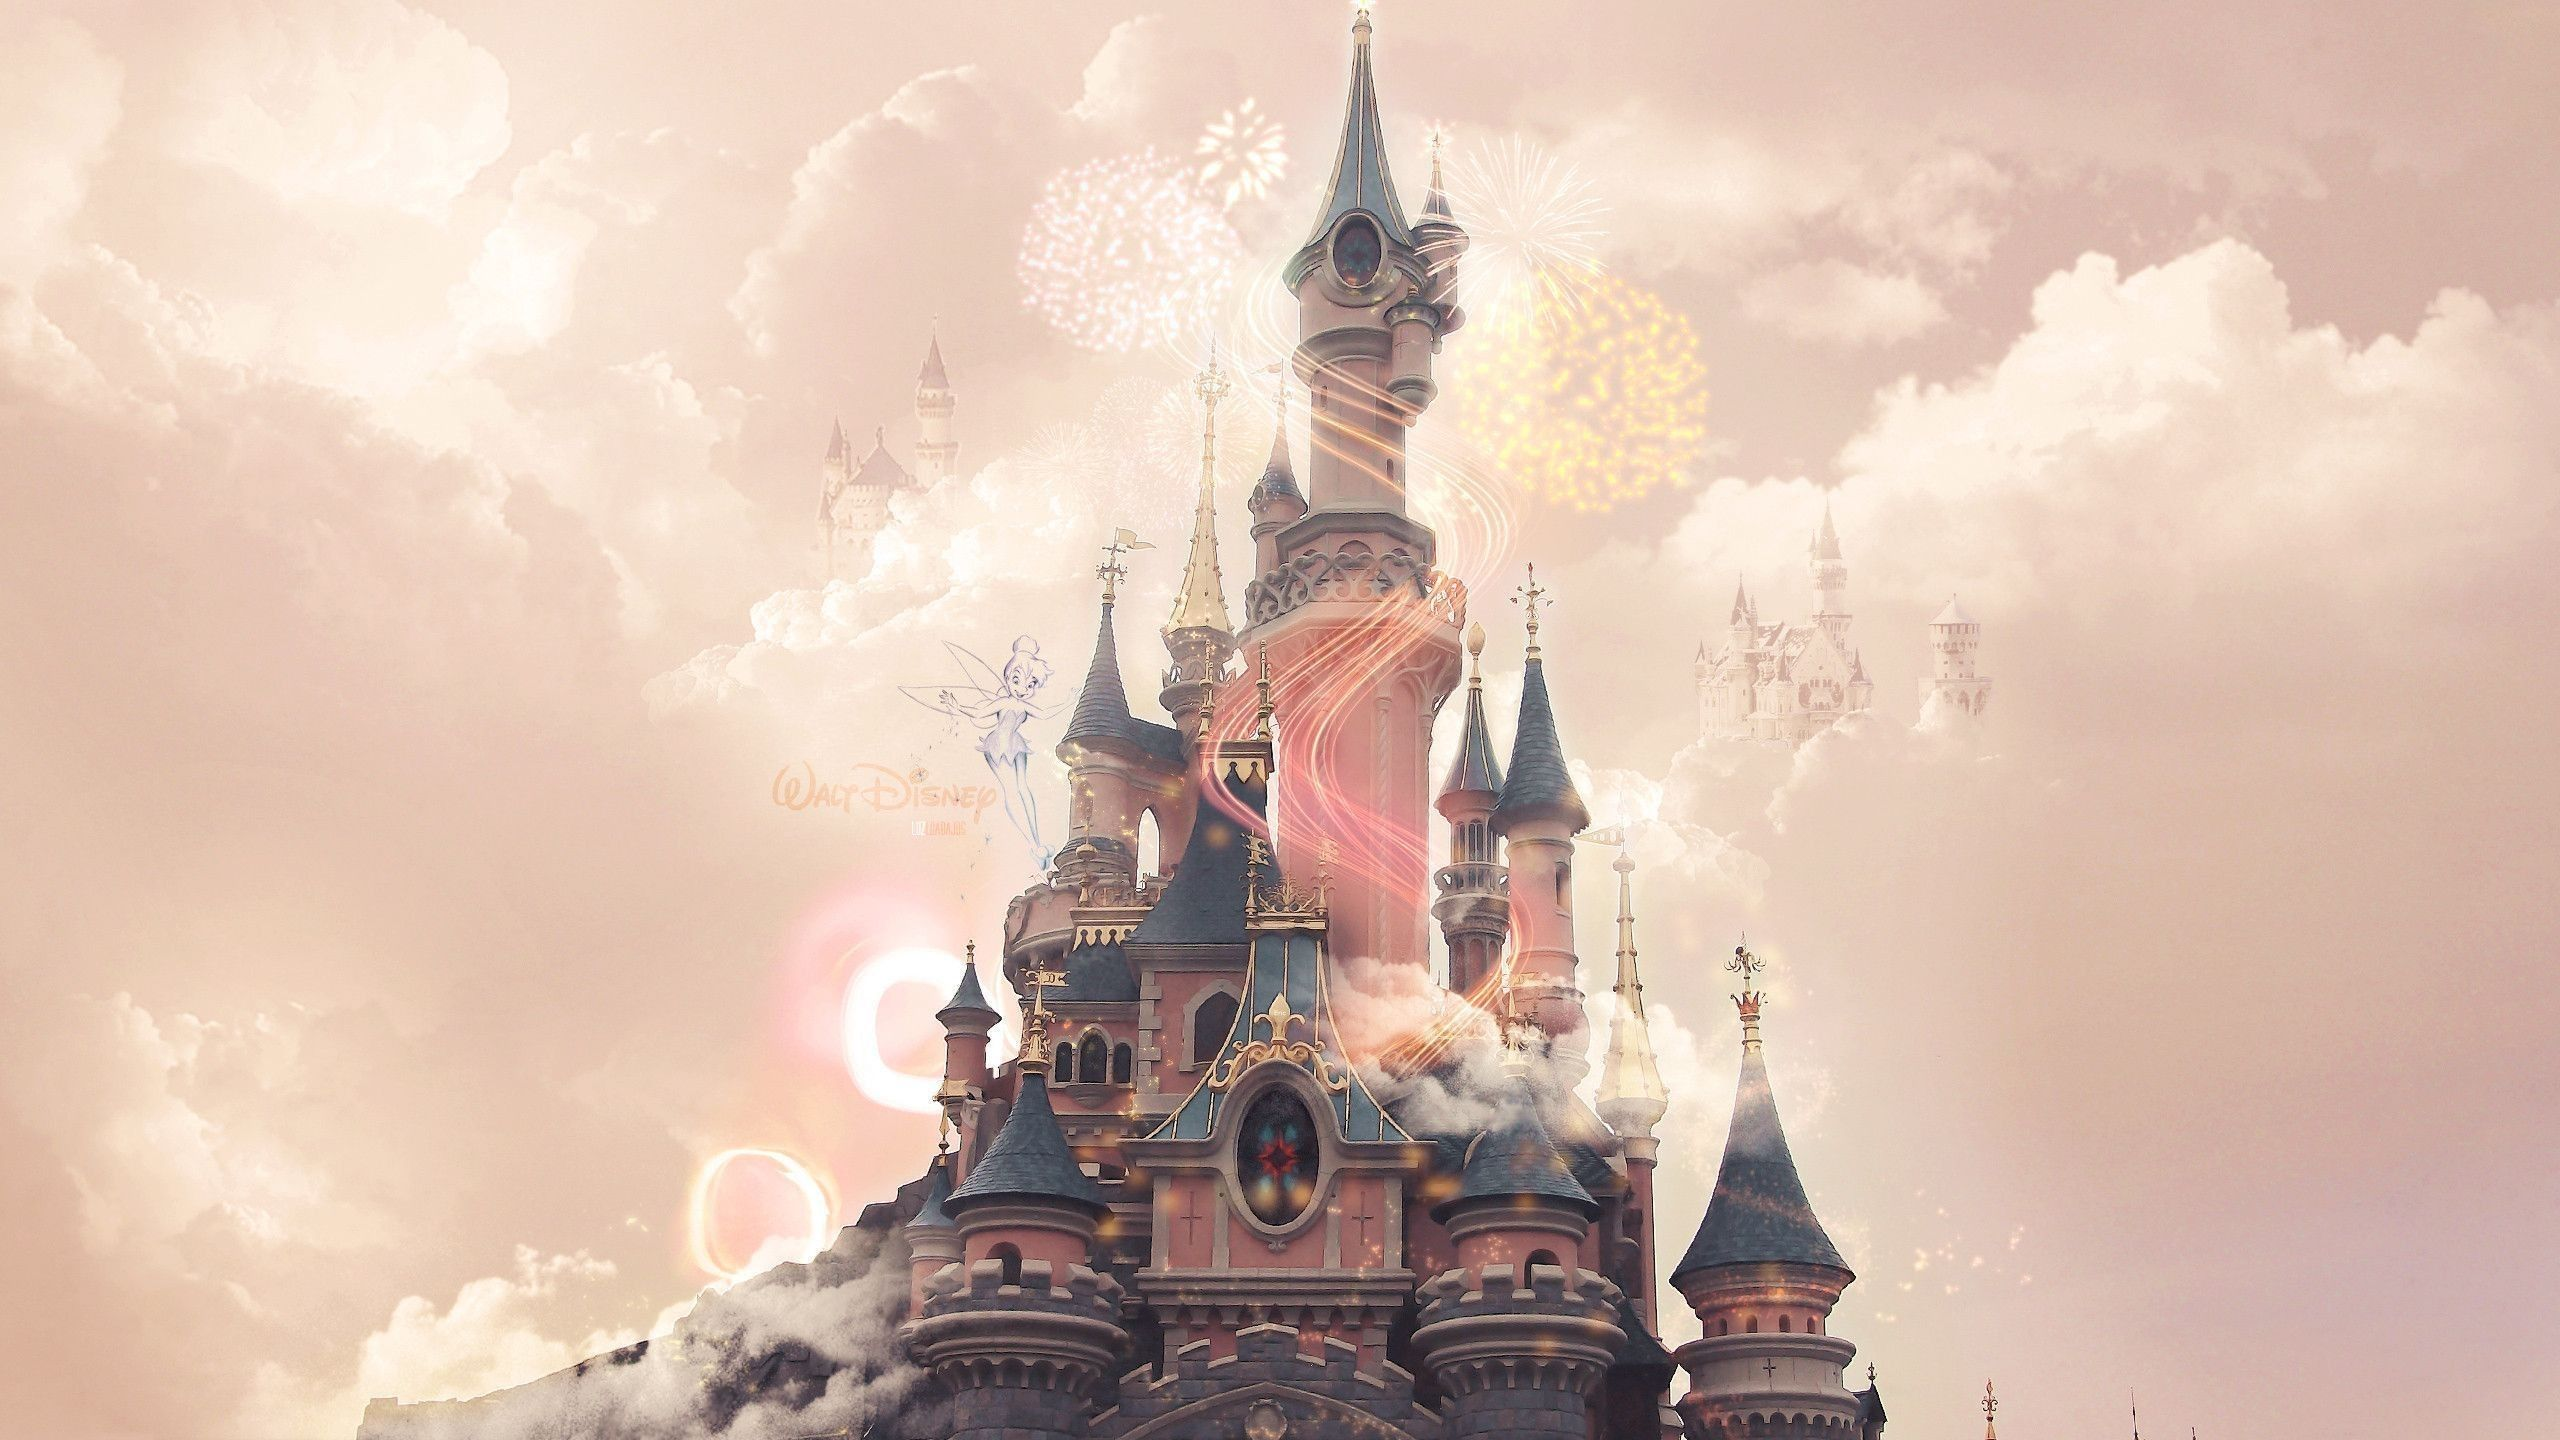 Res 2560x1440 Phone Wallpaper Disney Lots More Once You Click On The Link Disney Desktop Wallpaper Disney Wallpaper Cute Disney Wallpaper